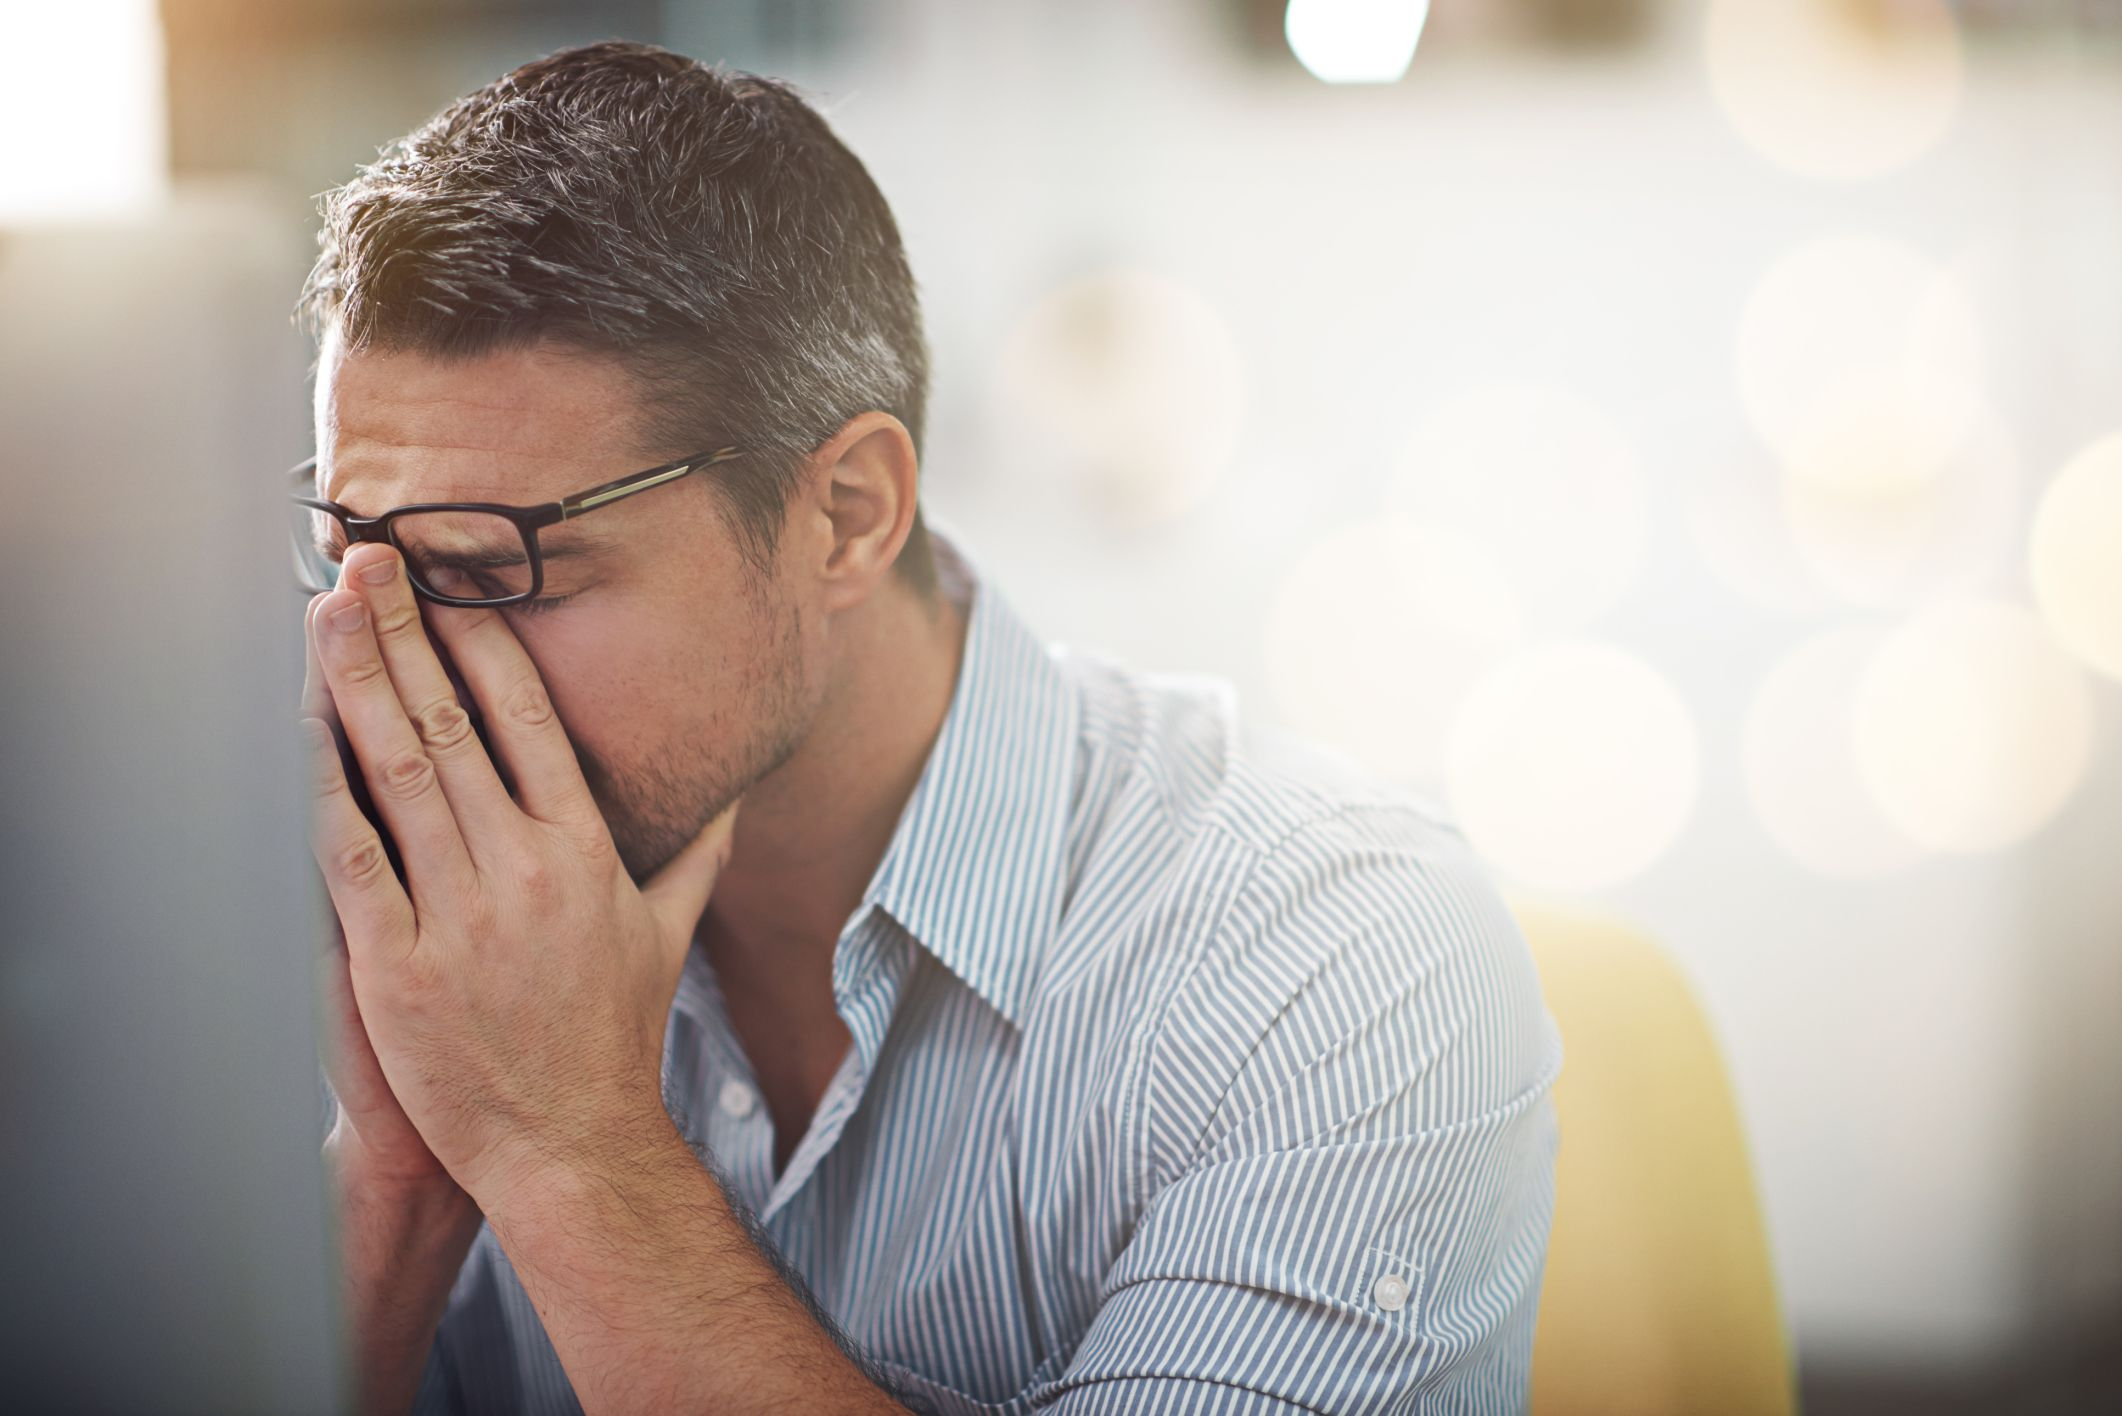 How to Deal With Emotional Stress in Your Life